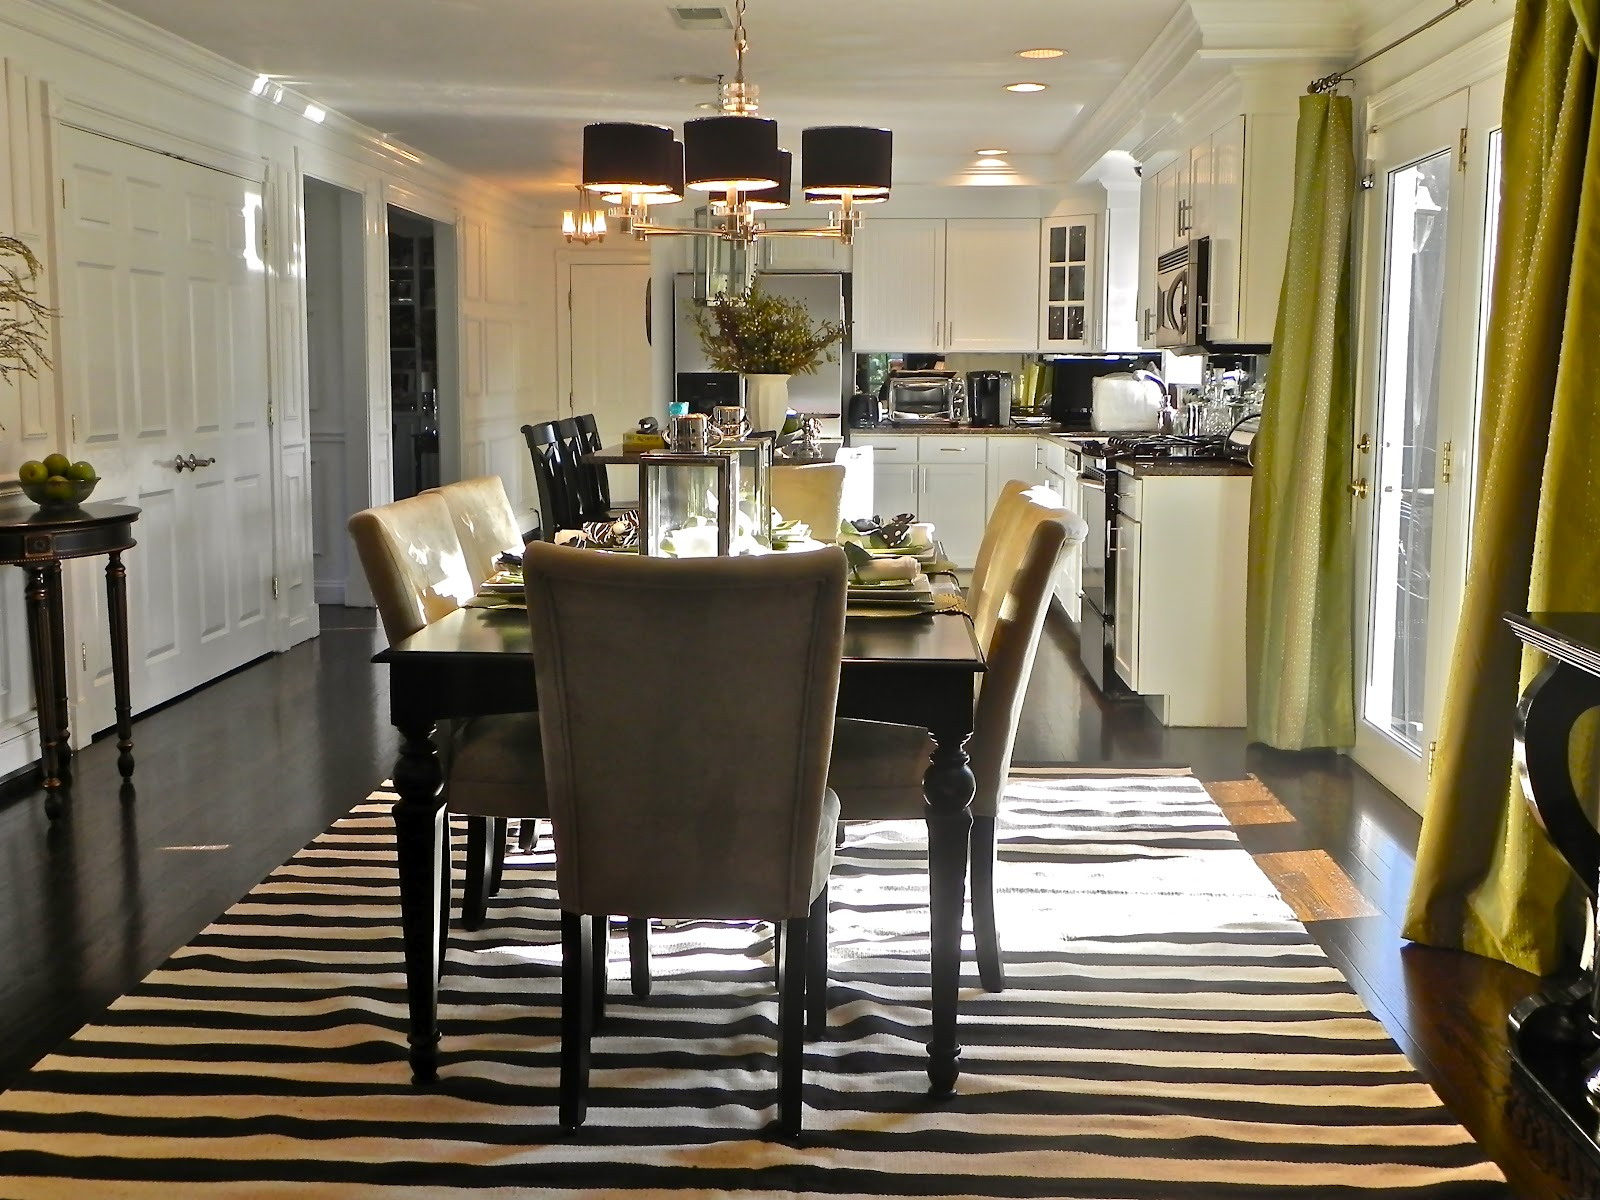 Monochrome elegance 30 black and white striped rugs for Dining room rugs